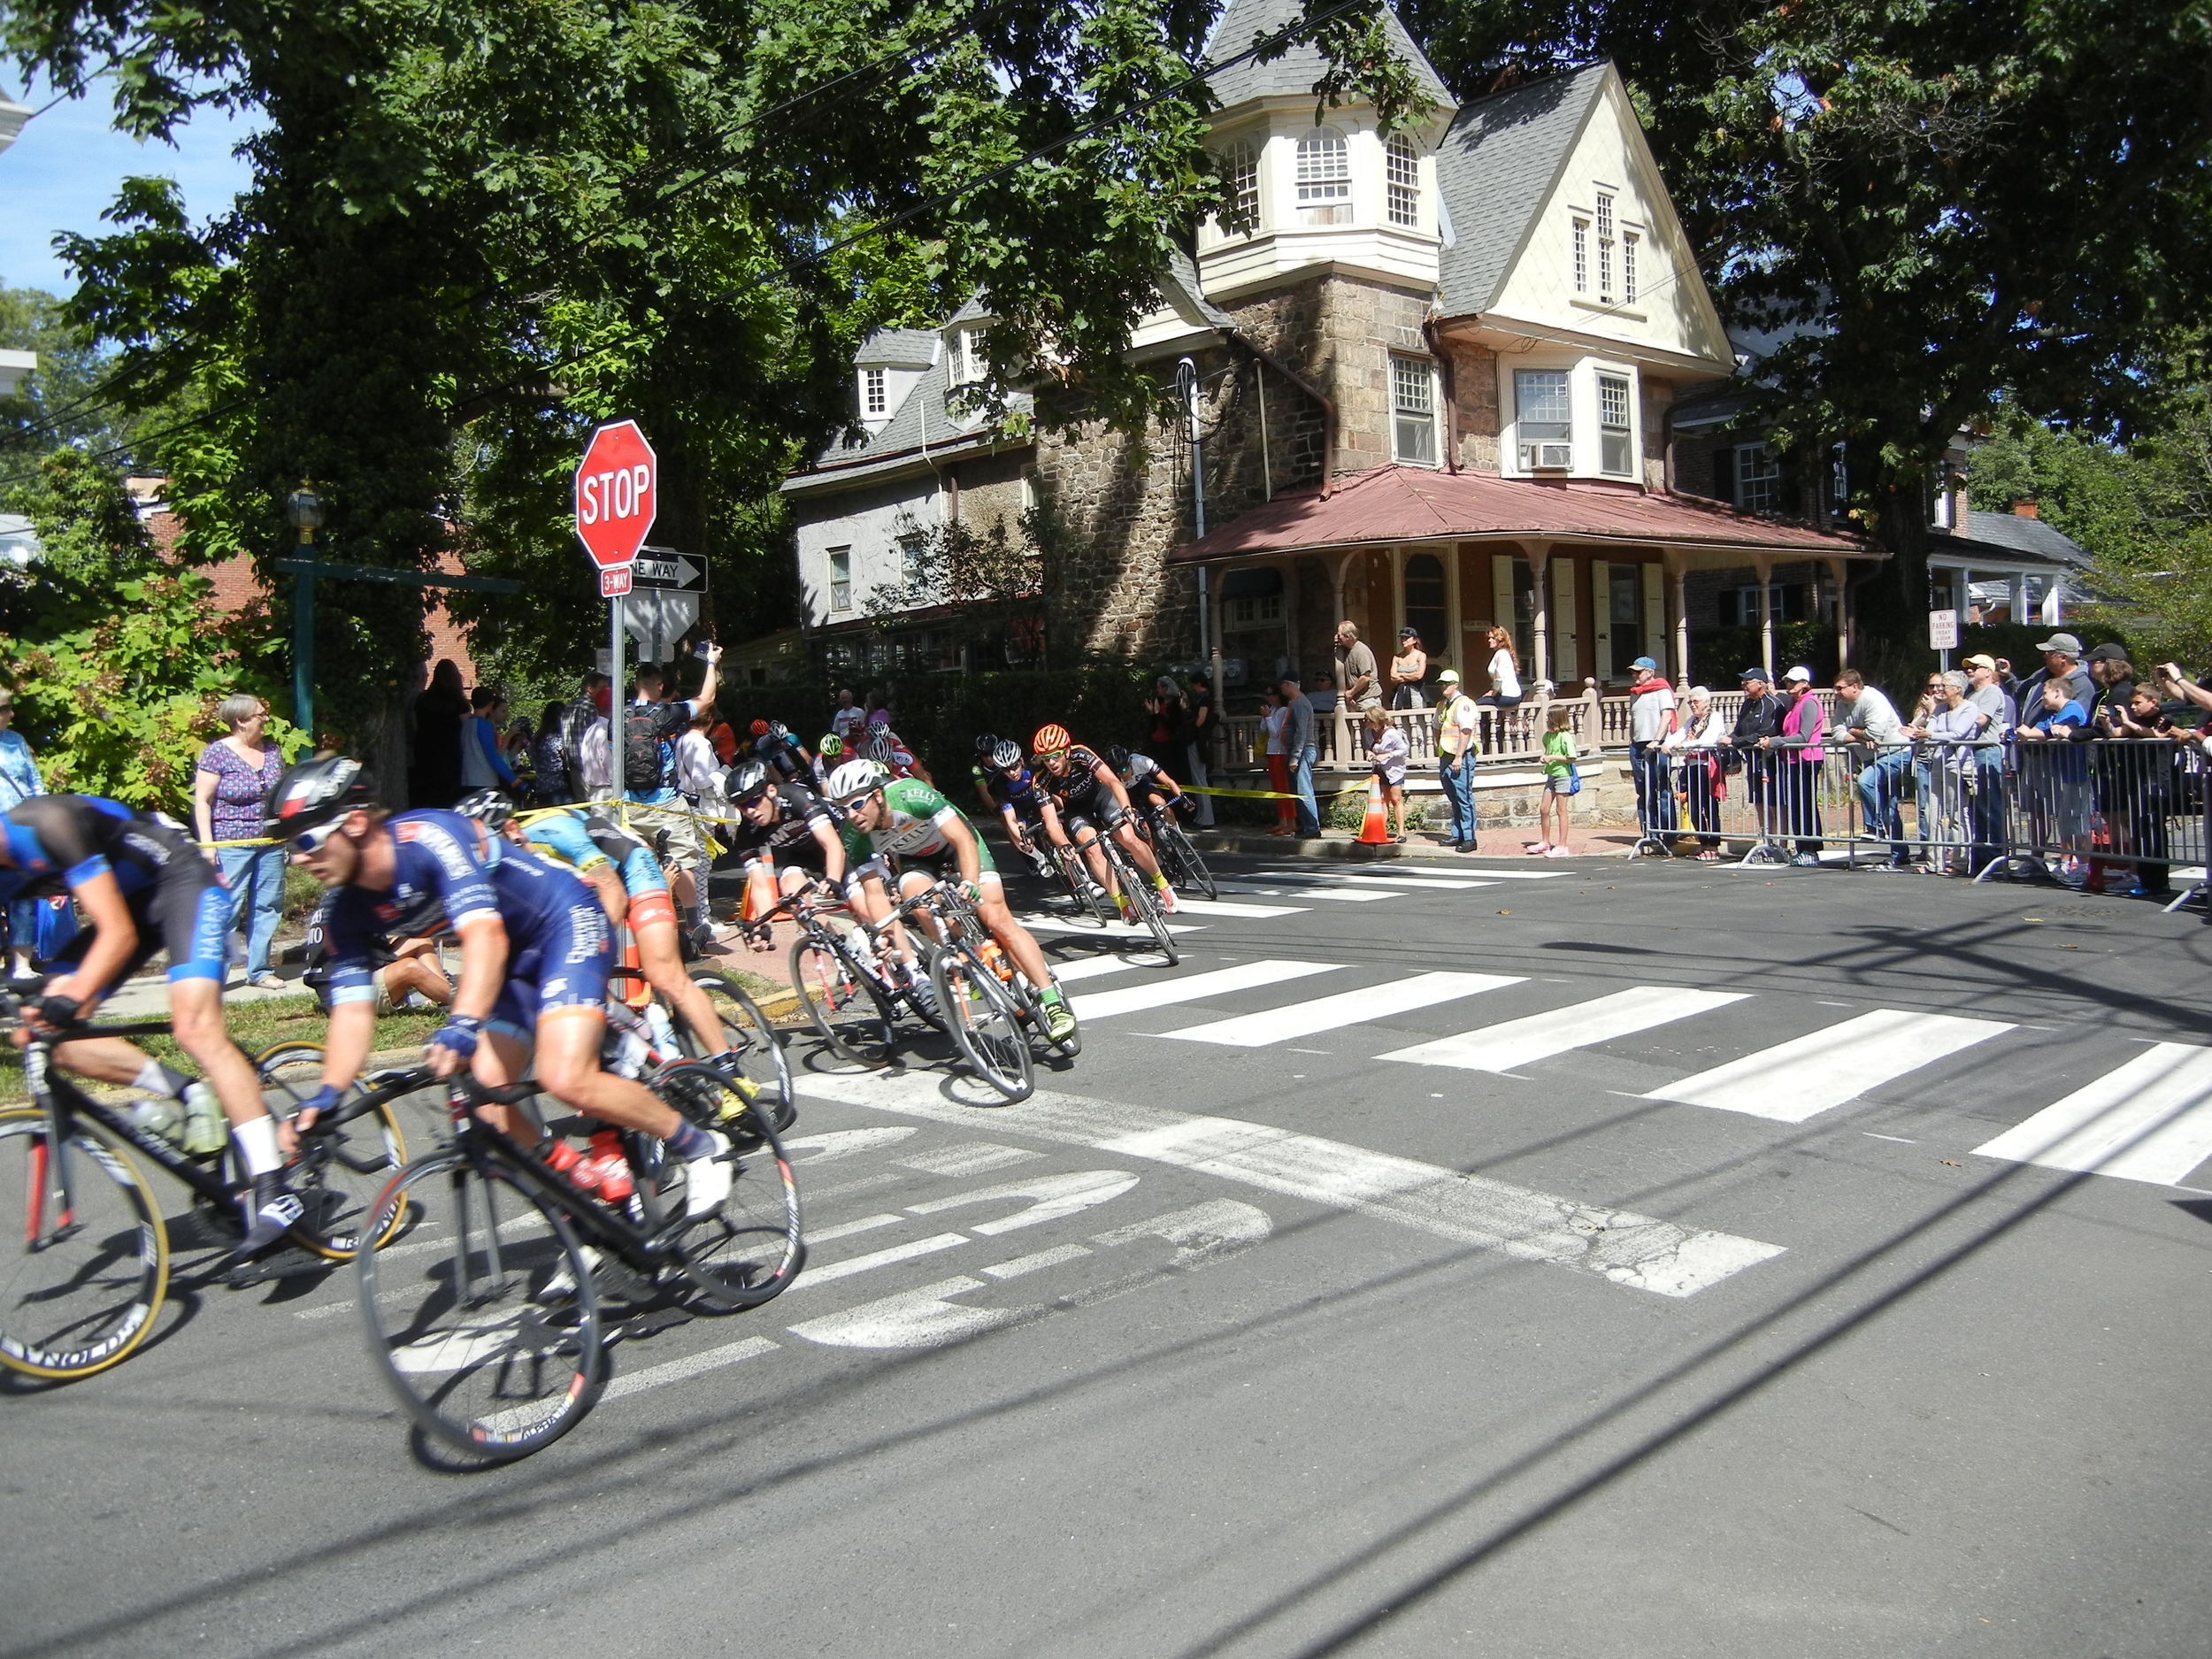 The 2014 edition saw sunny skies that allowed the Pine Street turn to be taken a full speed.